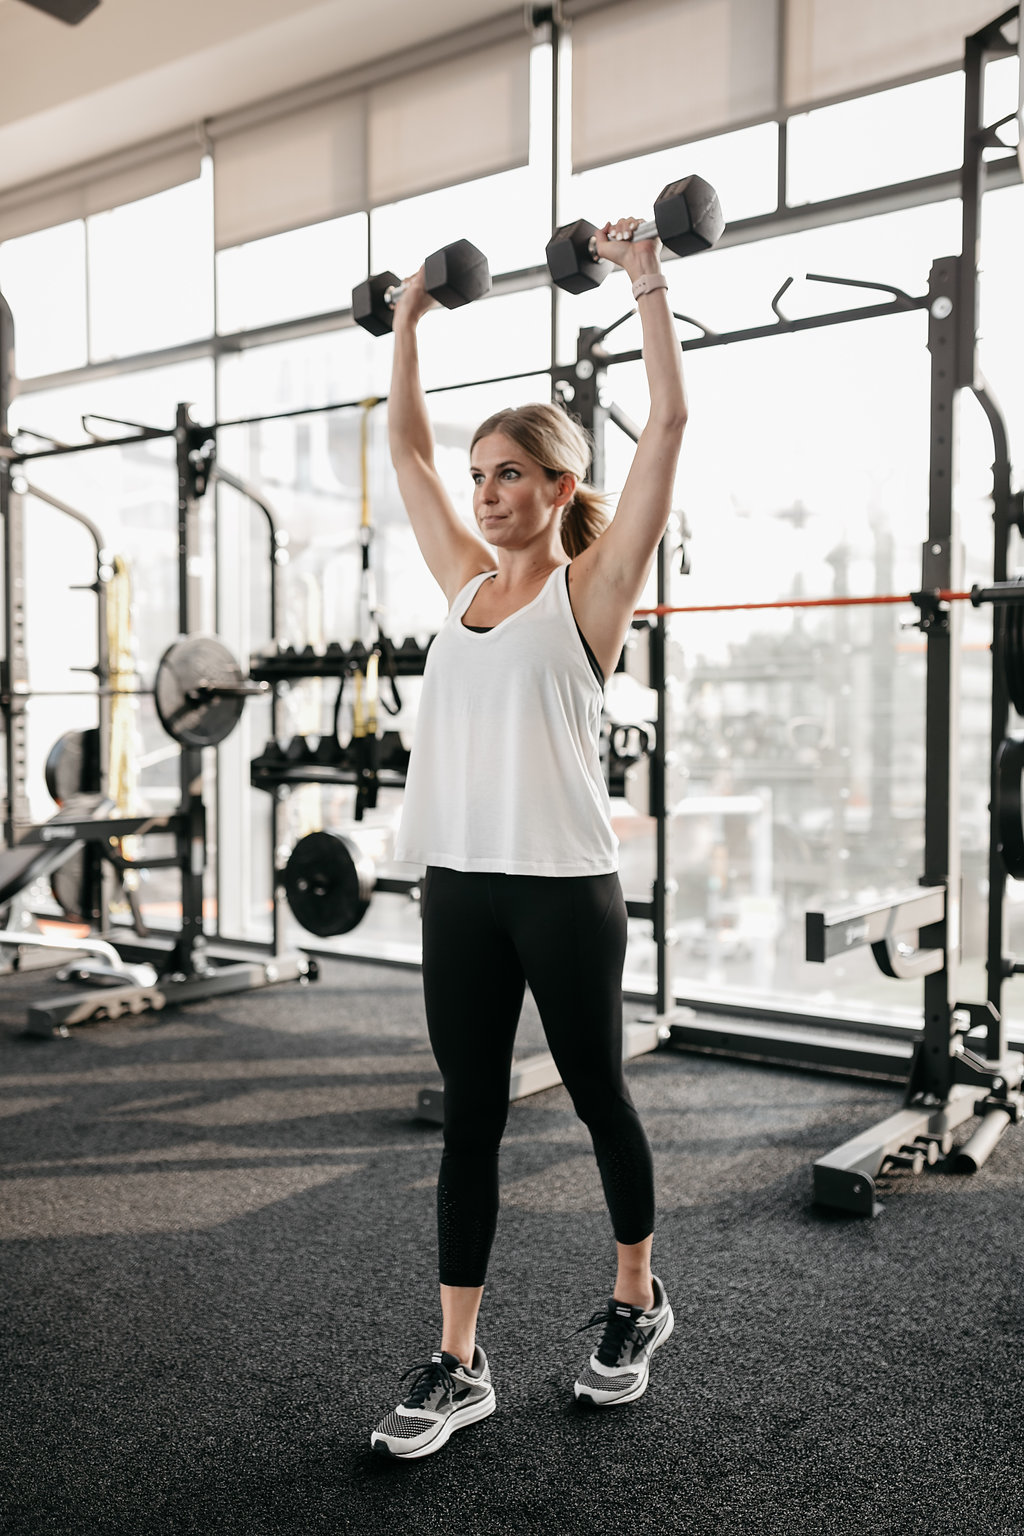 DUMBBELL OVERHEAD PRESS as exercises for toned arms